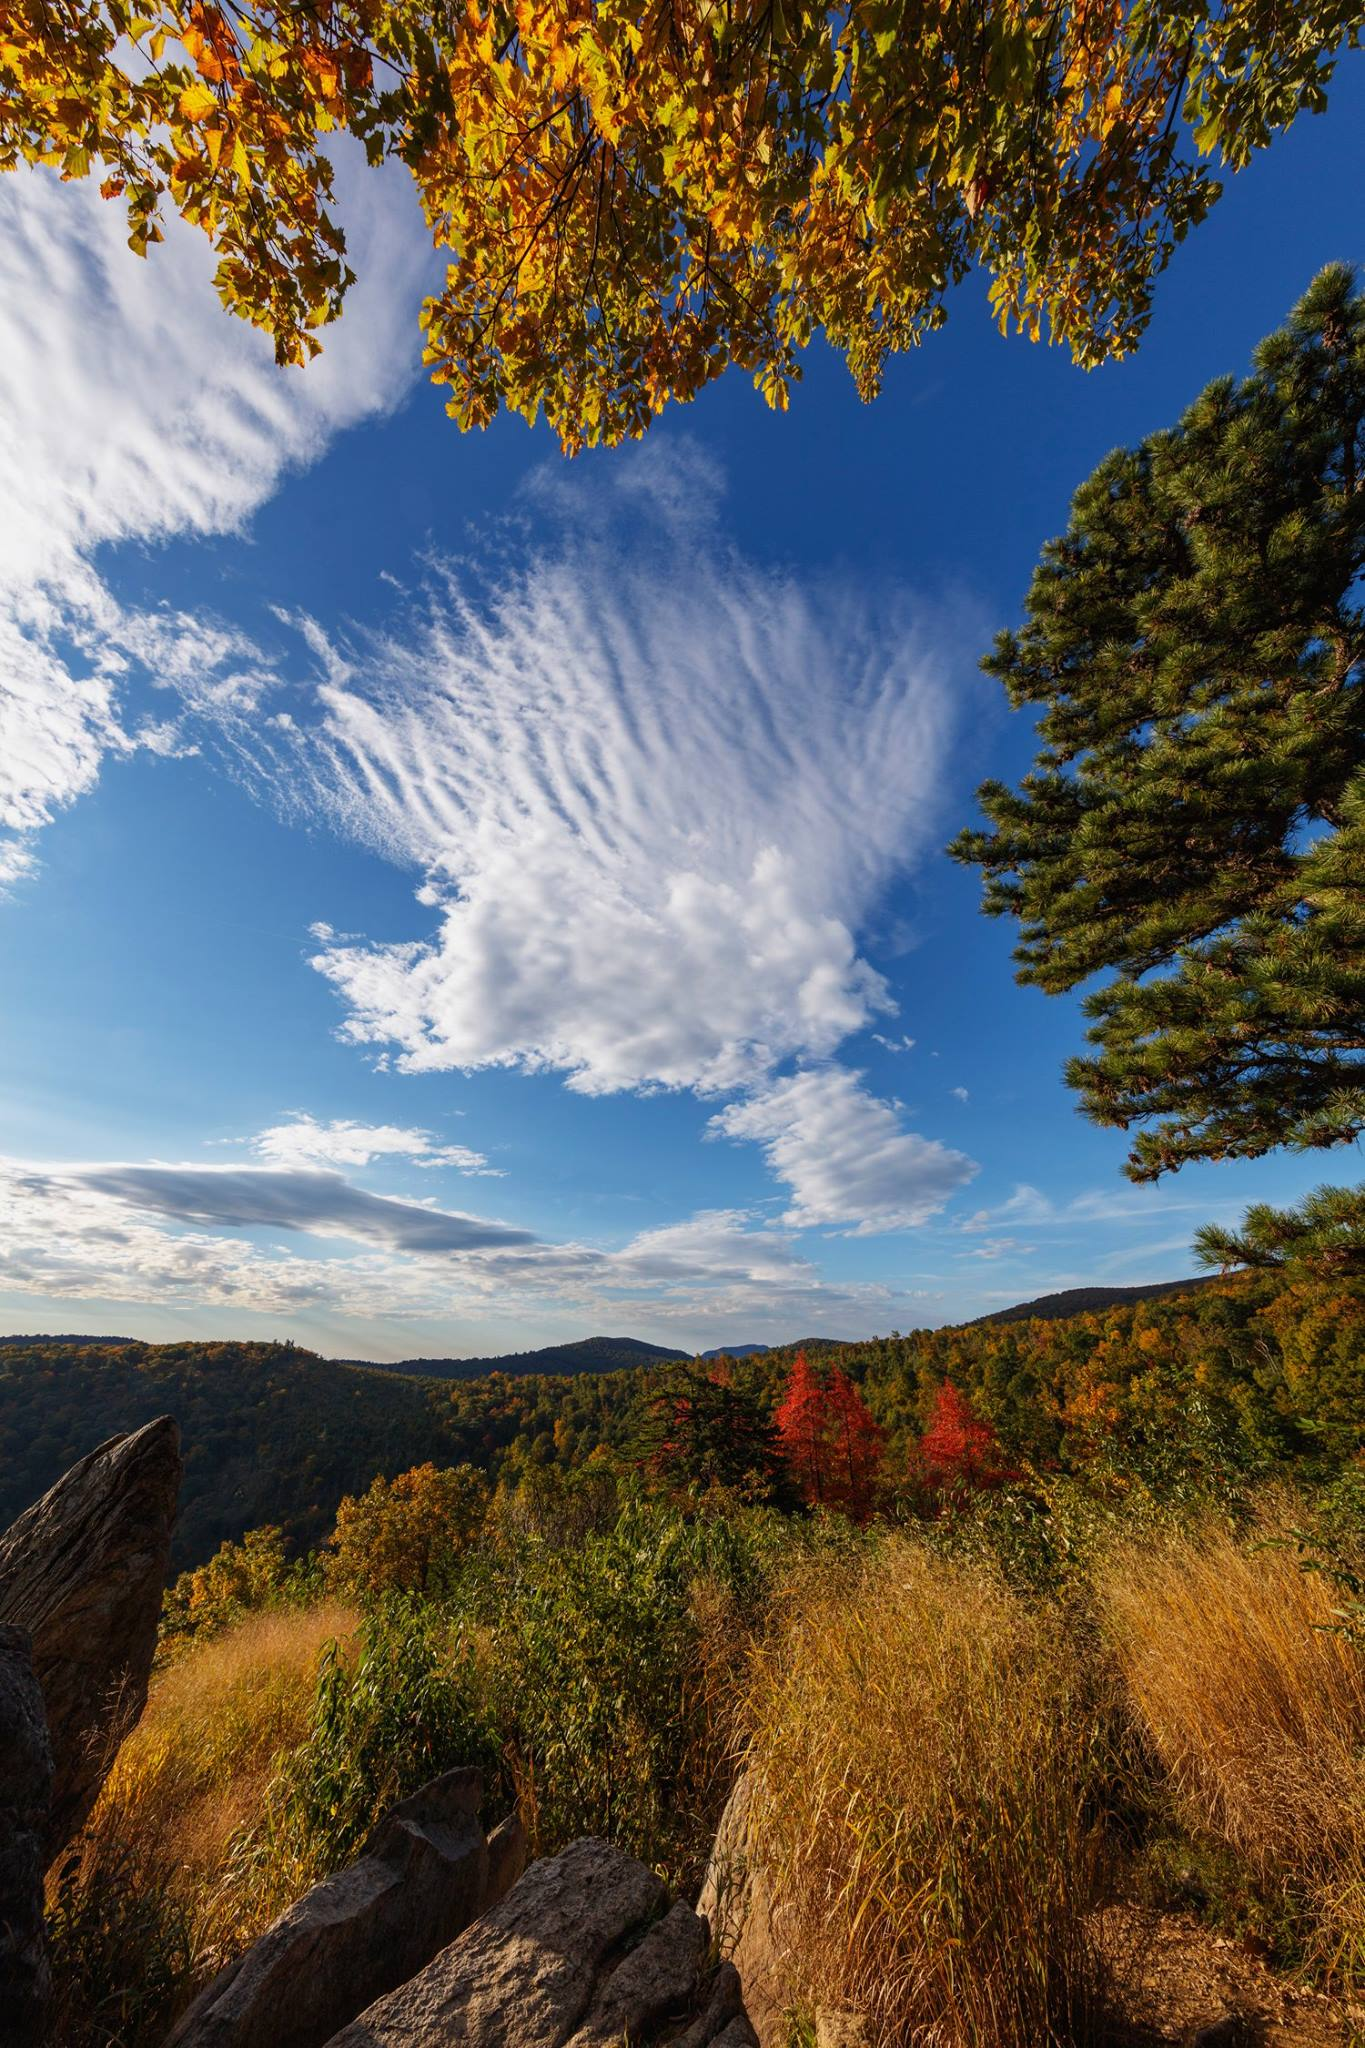 Fall Scenes Wallpaper Shenandoah S Fall Color Shenandoah National Park U S